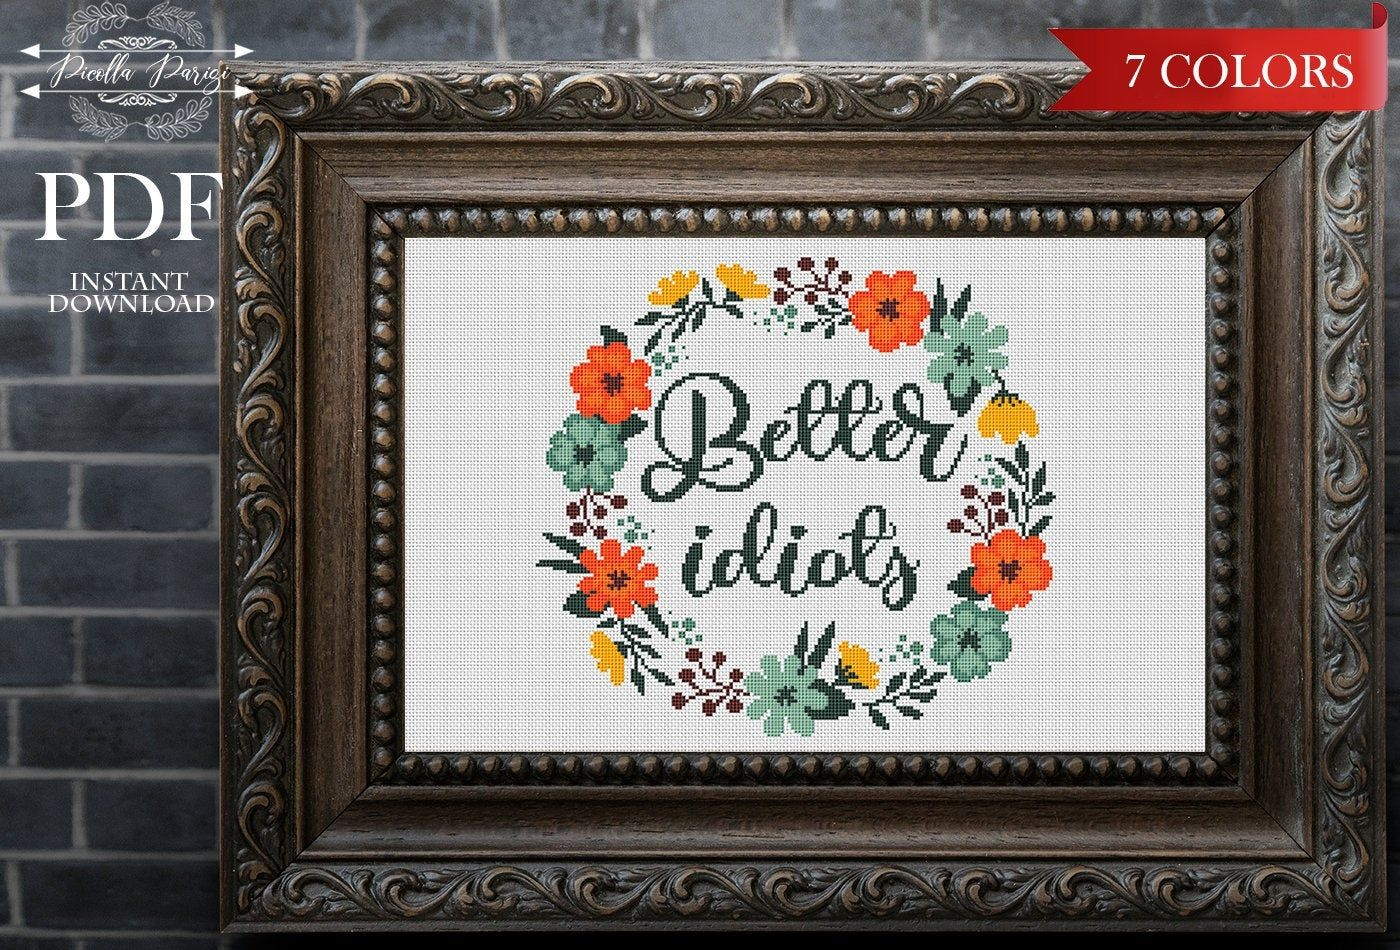 Funny Cross Stitch Pattern, Modern cross stitch, Subversive Cross Stitch Pattern, Floral cross stitch, Better idiots, home decor